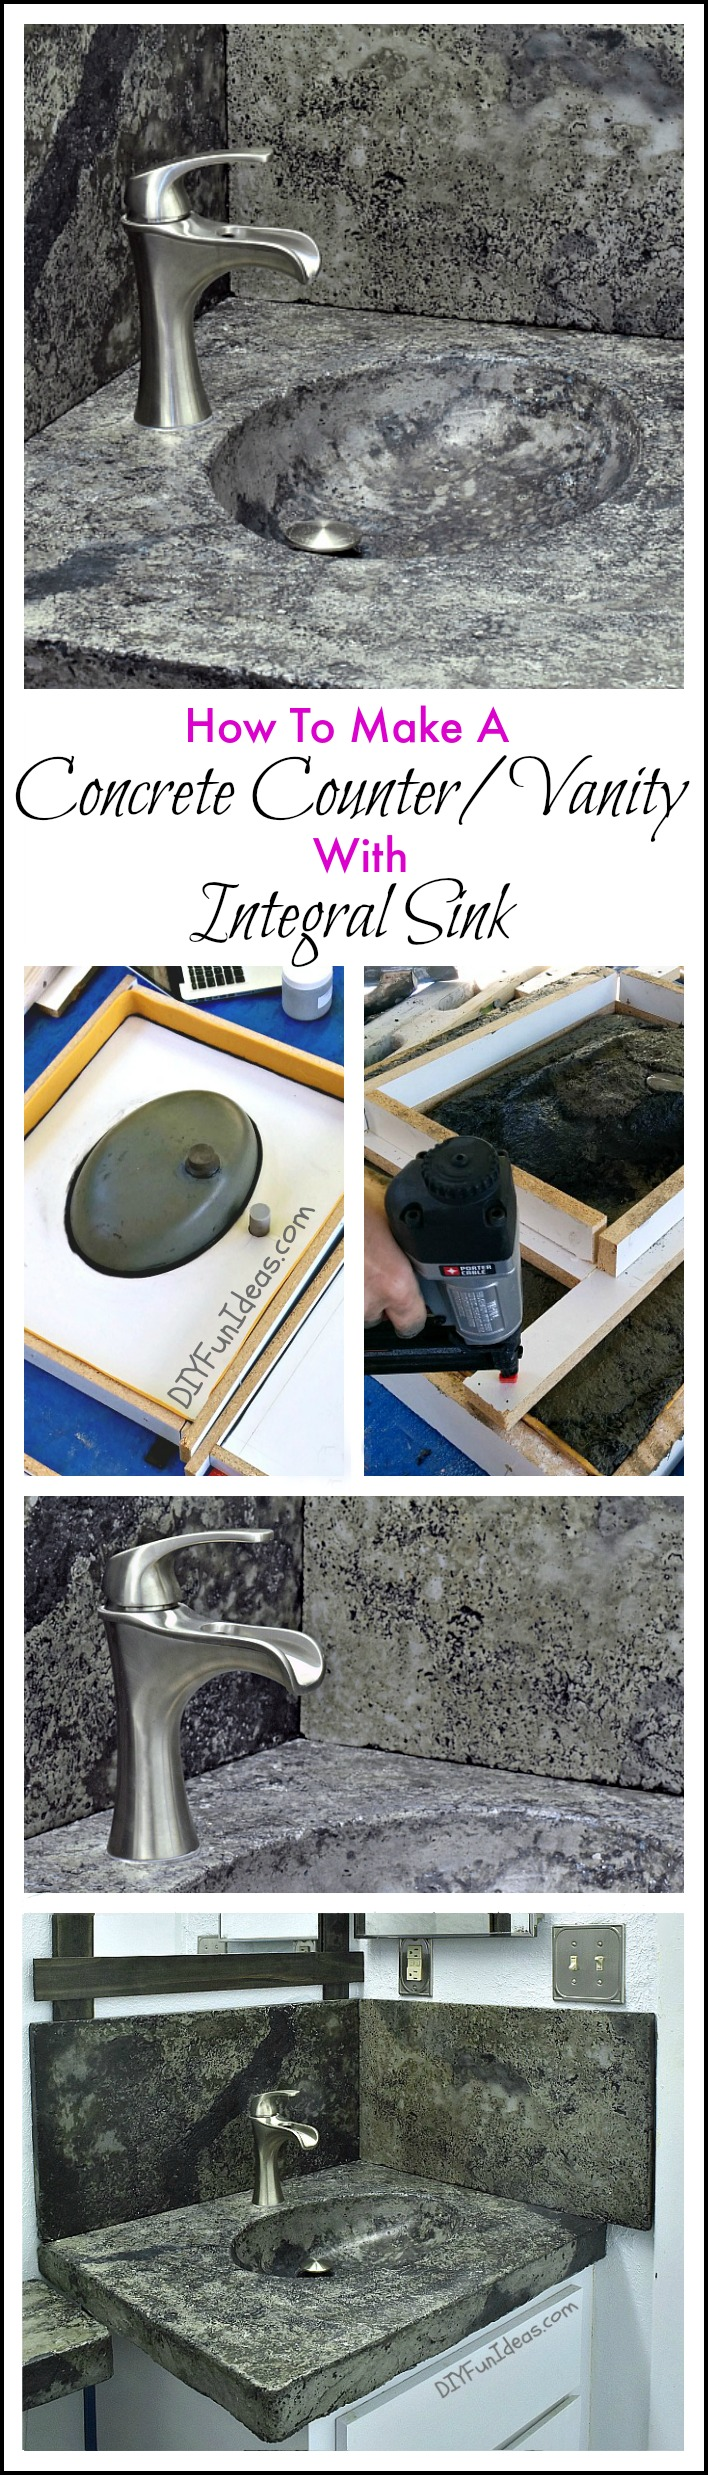 How To Make A Concrete Countertop Or Vanity With Integral Sink Do It Yourself Fun Ideas